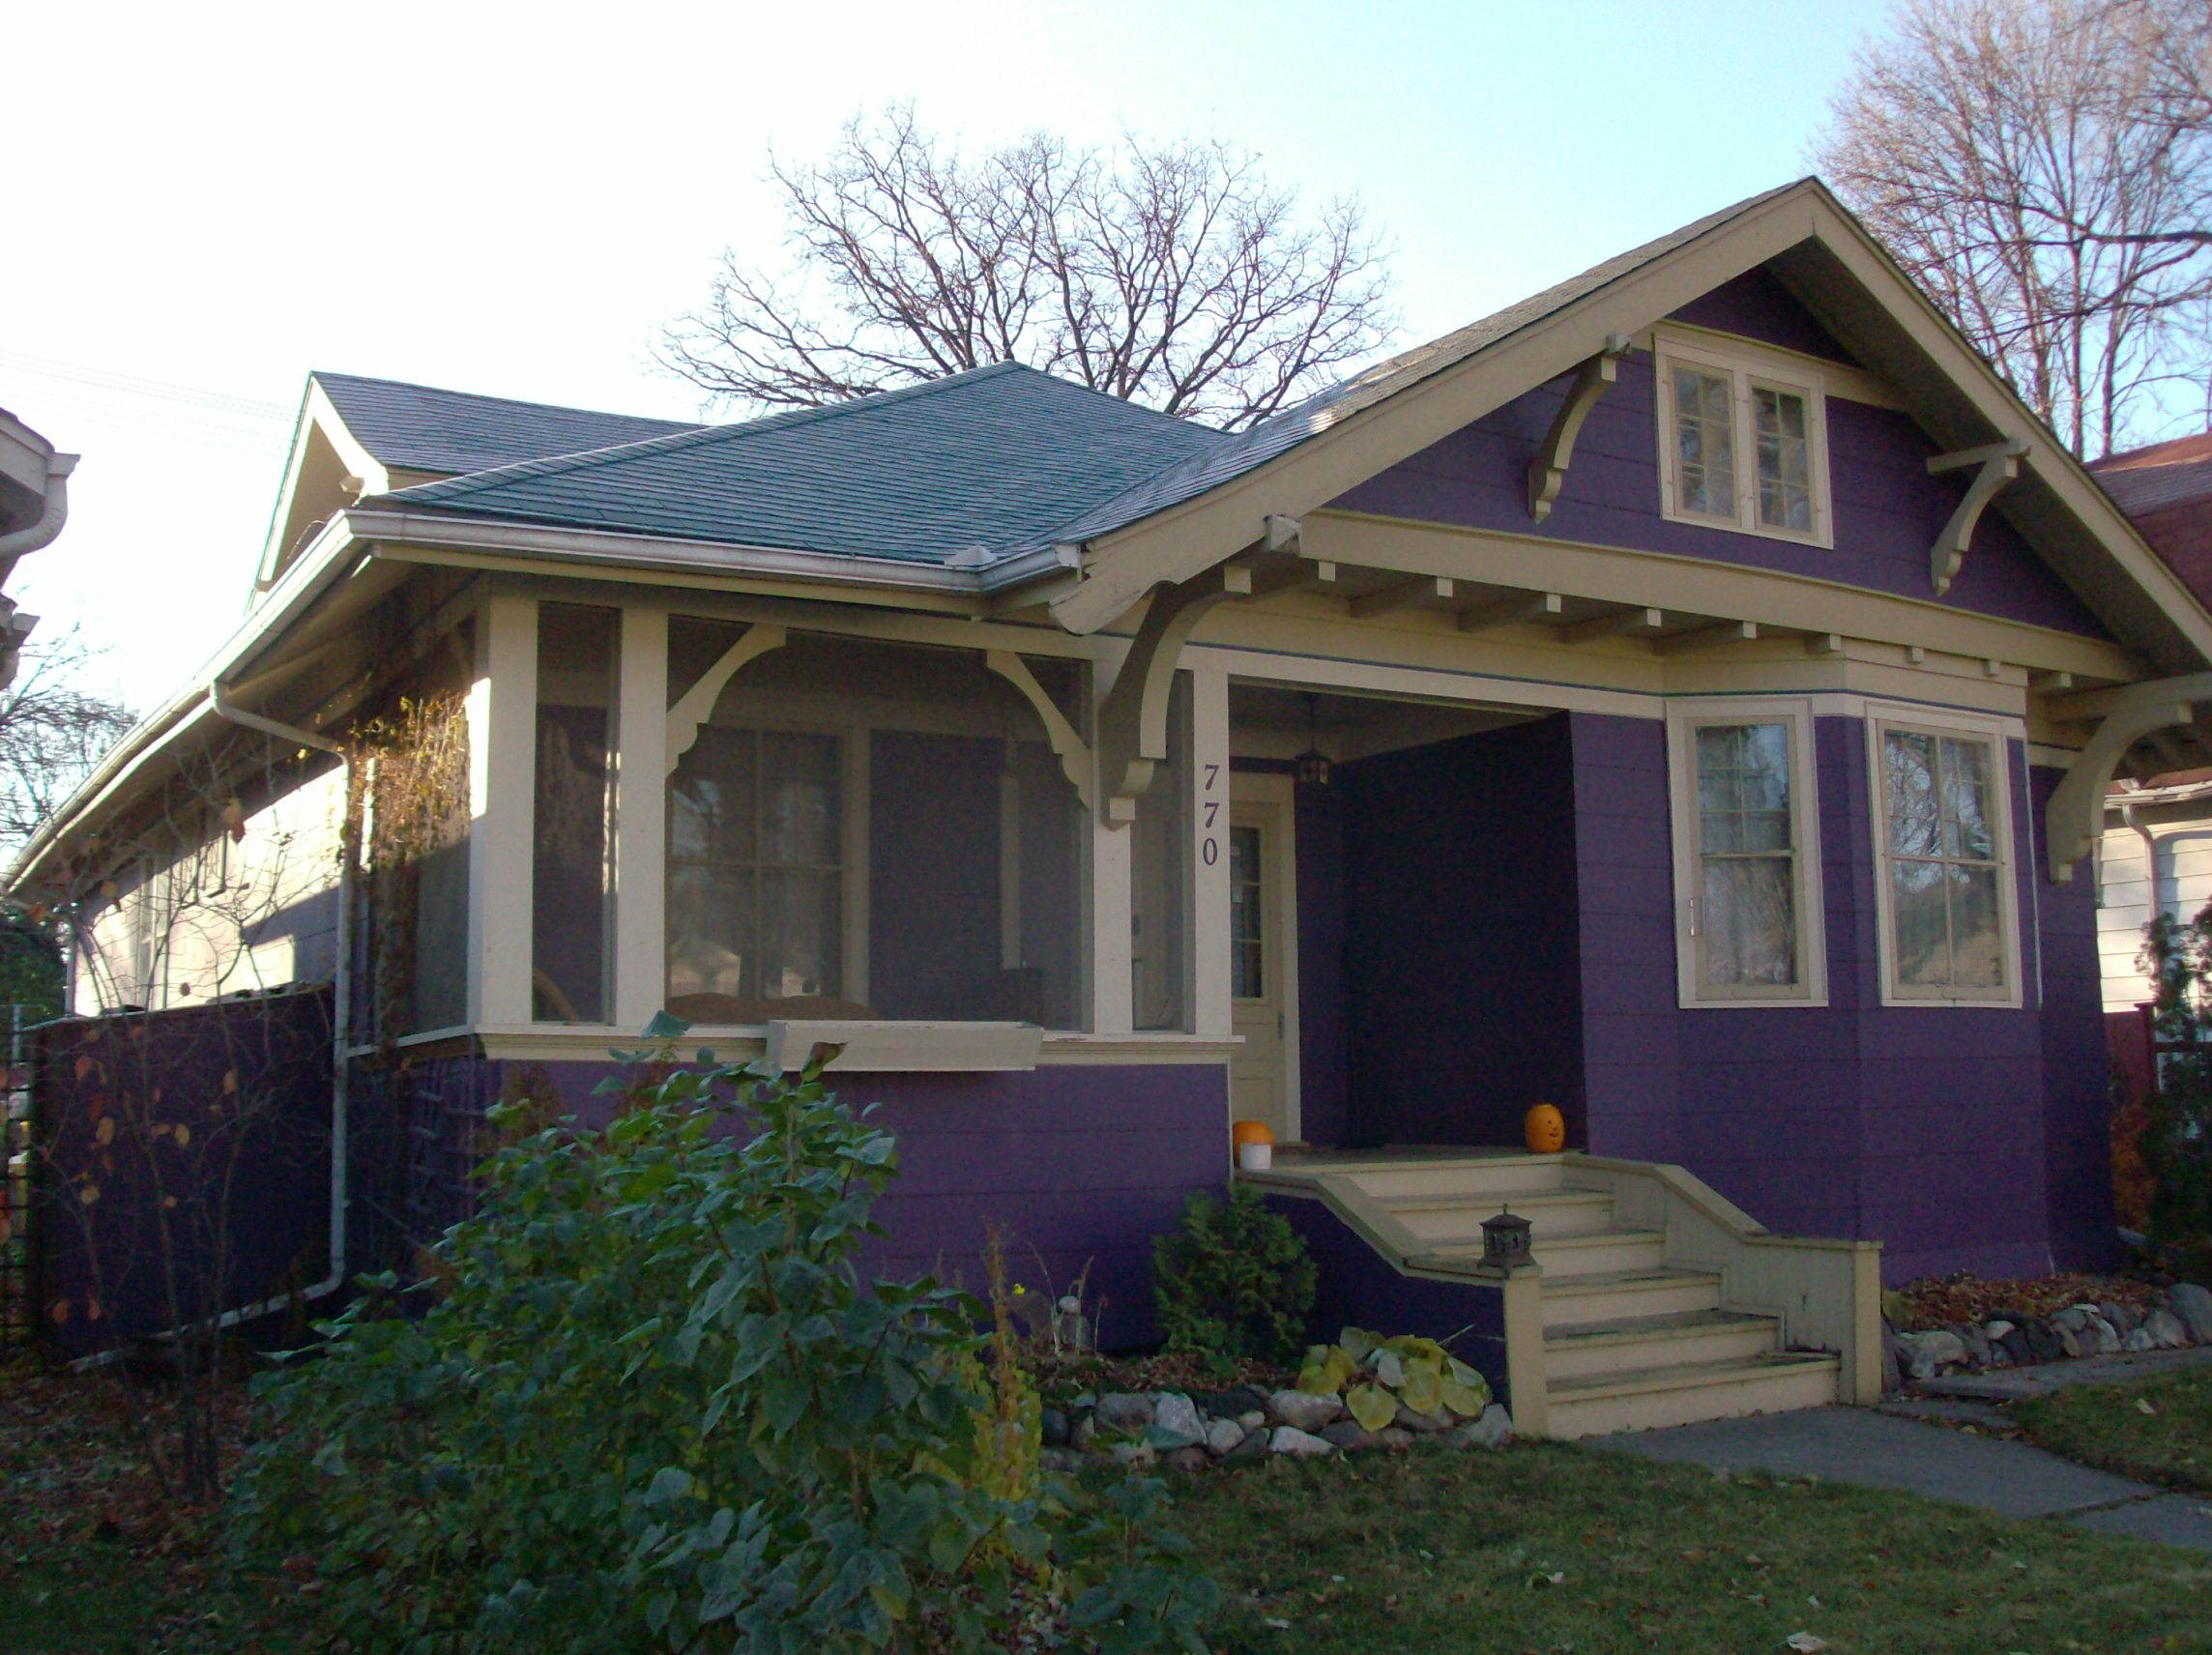 Arts and crafts style bungalow arts and crafts style for Craftsman style architecture